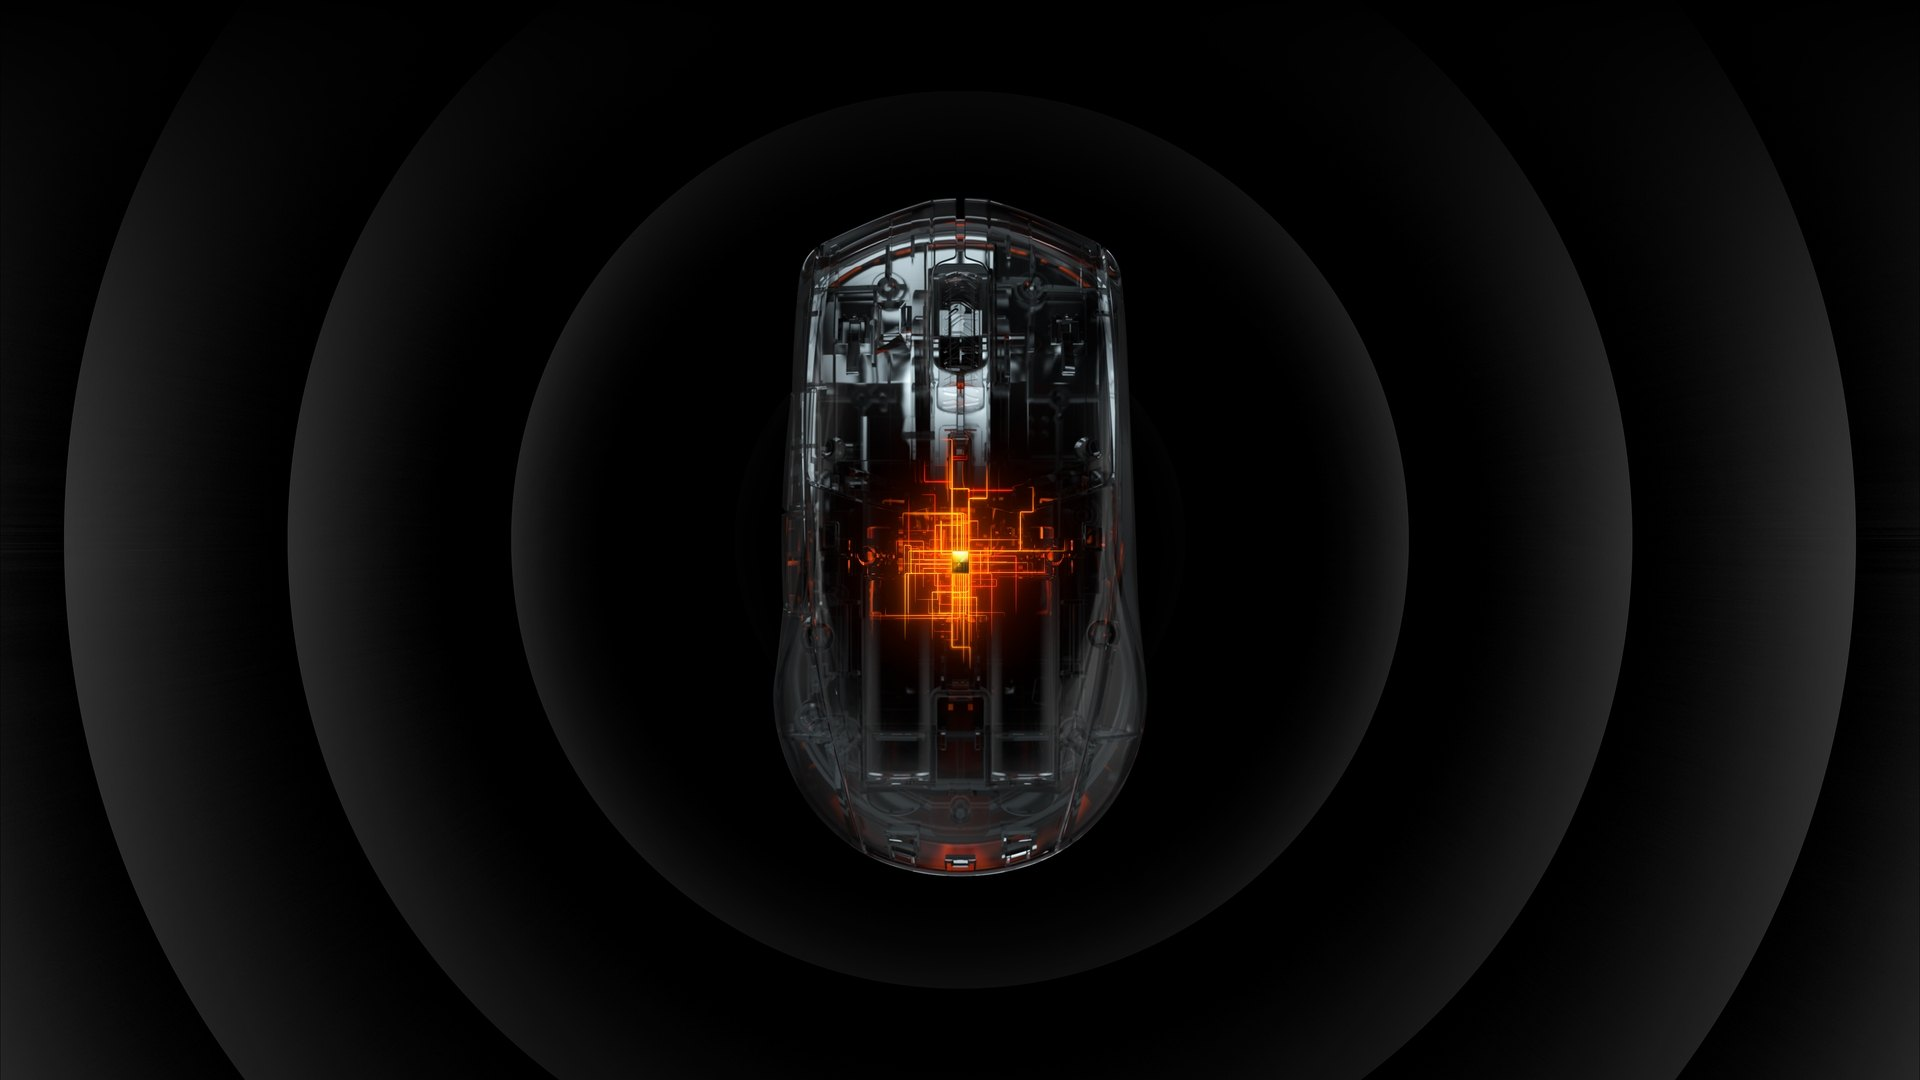 Render of the mouse in a stylized translucent look, showing the chip inside the mouse